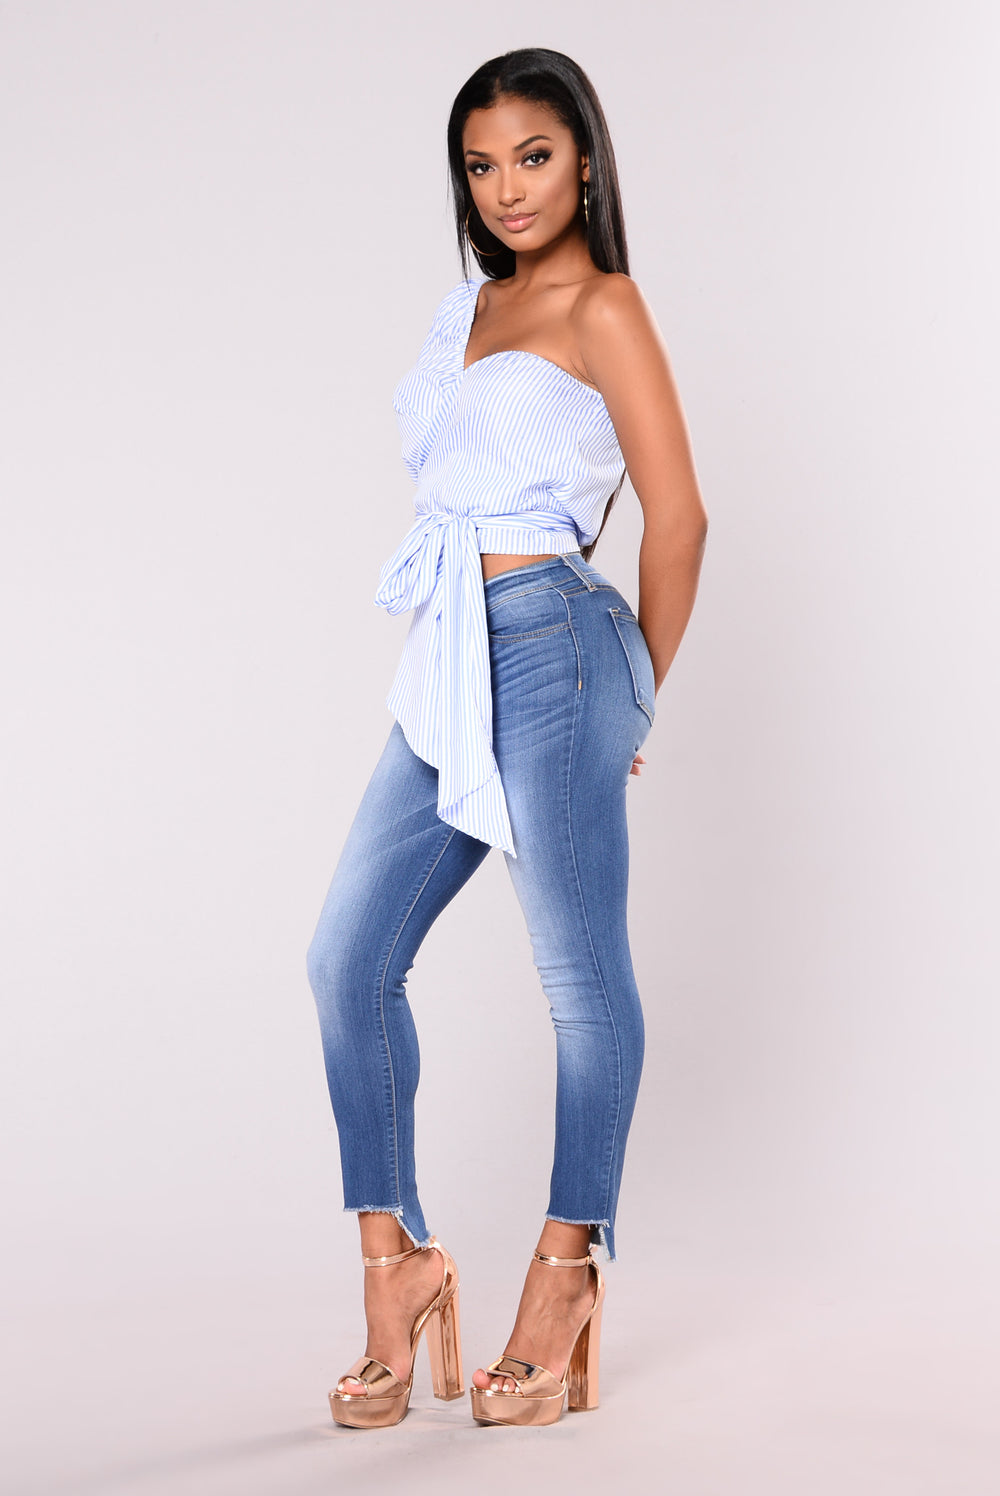 In Disguise Pinstripe Top - Blue/White